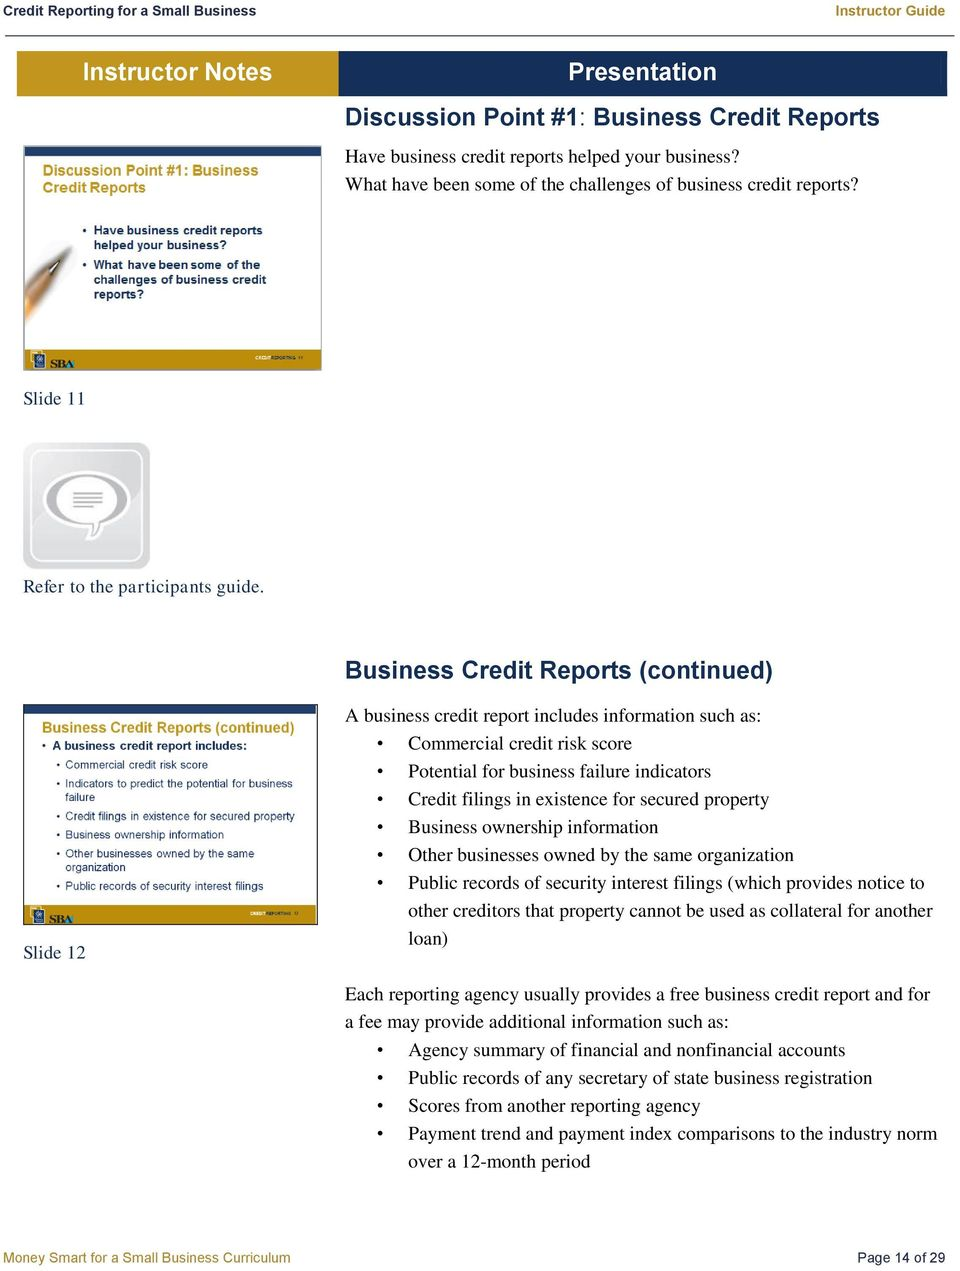 Business Credit Reports (continued) Slide 12 A business credit report includes information such as: Commercial credit risk score Potential for business failure indicators Credit filings in existence